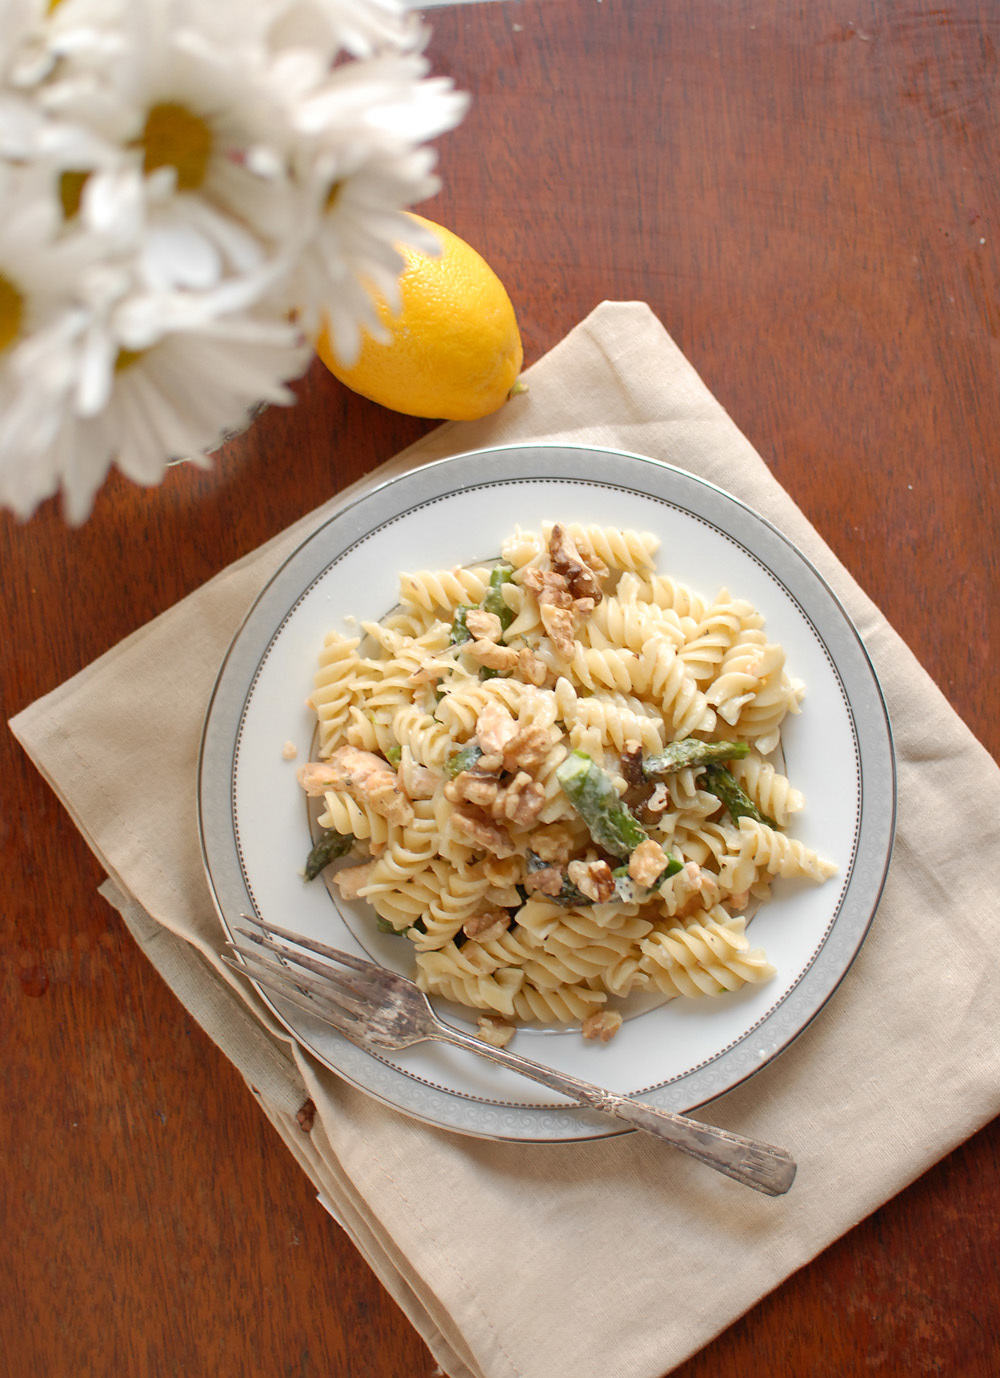 Tuna Tuesday (er..Wednesday) Salmon And Asparagus Pasta With Walnuts